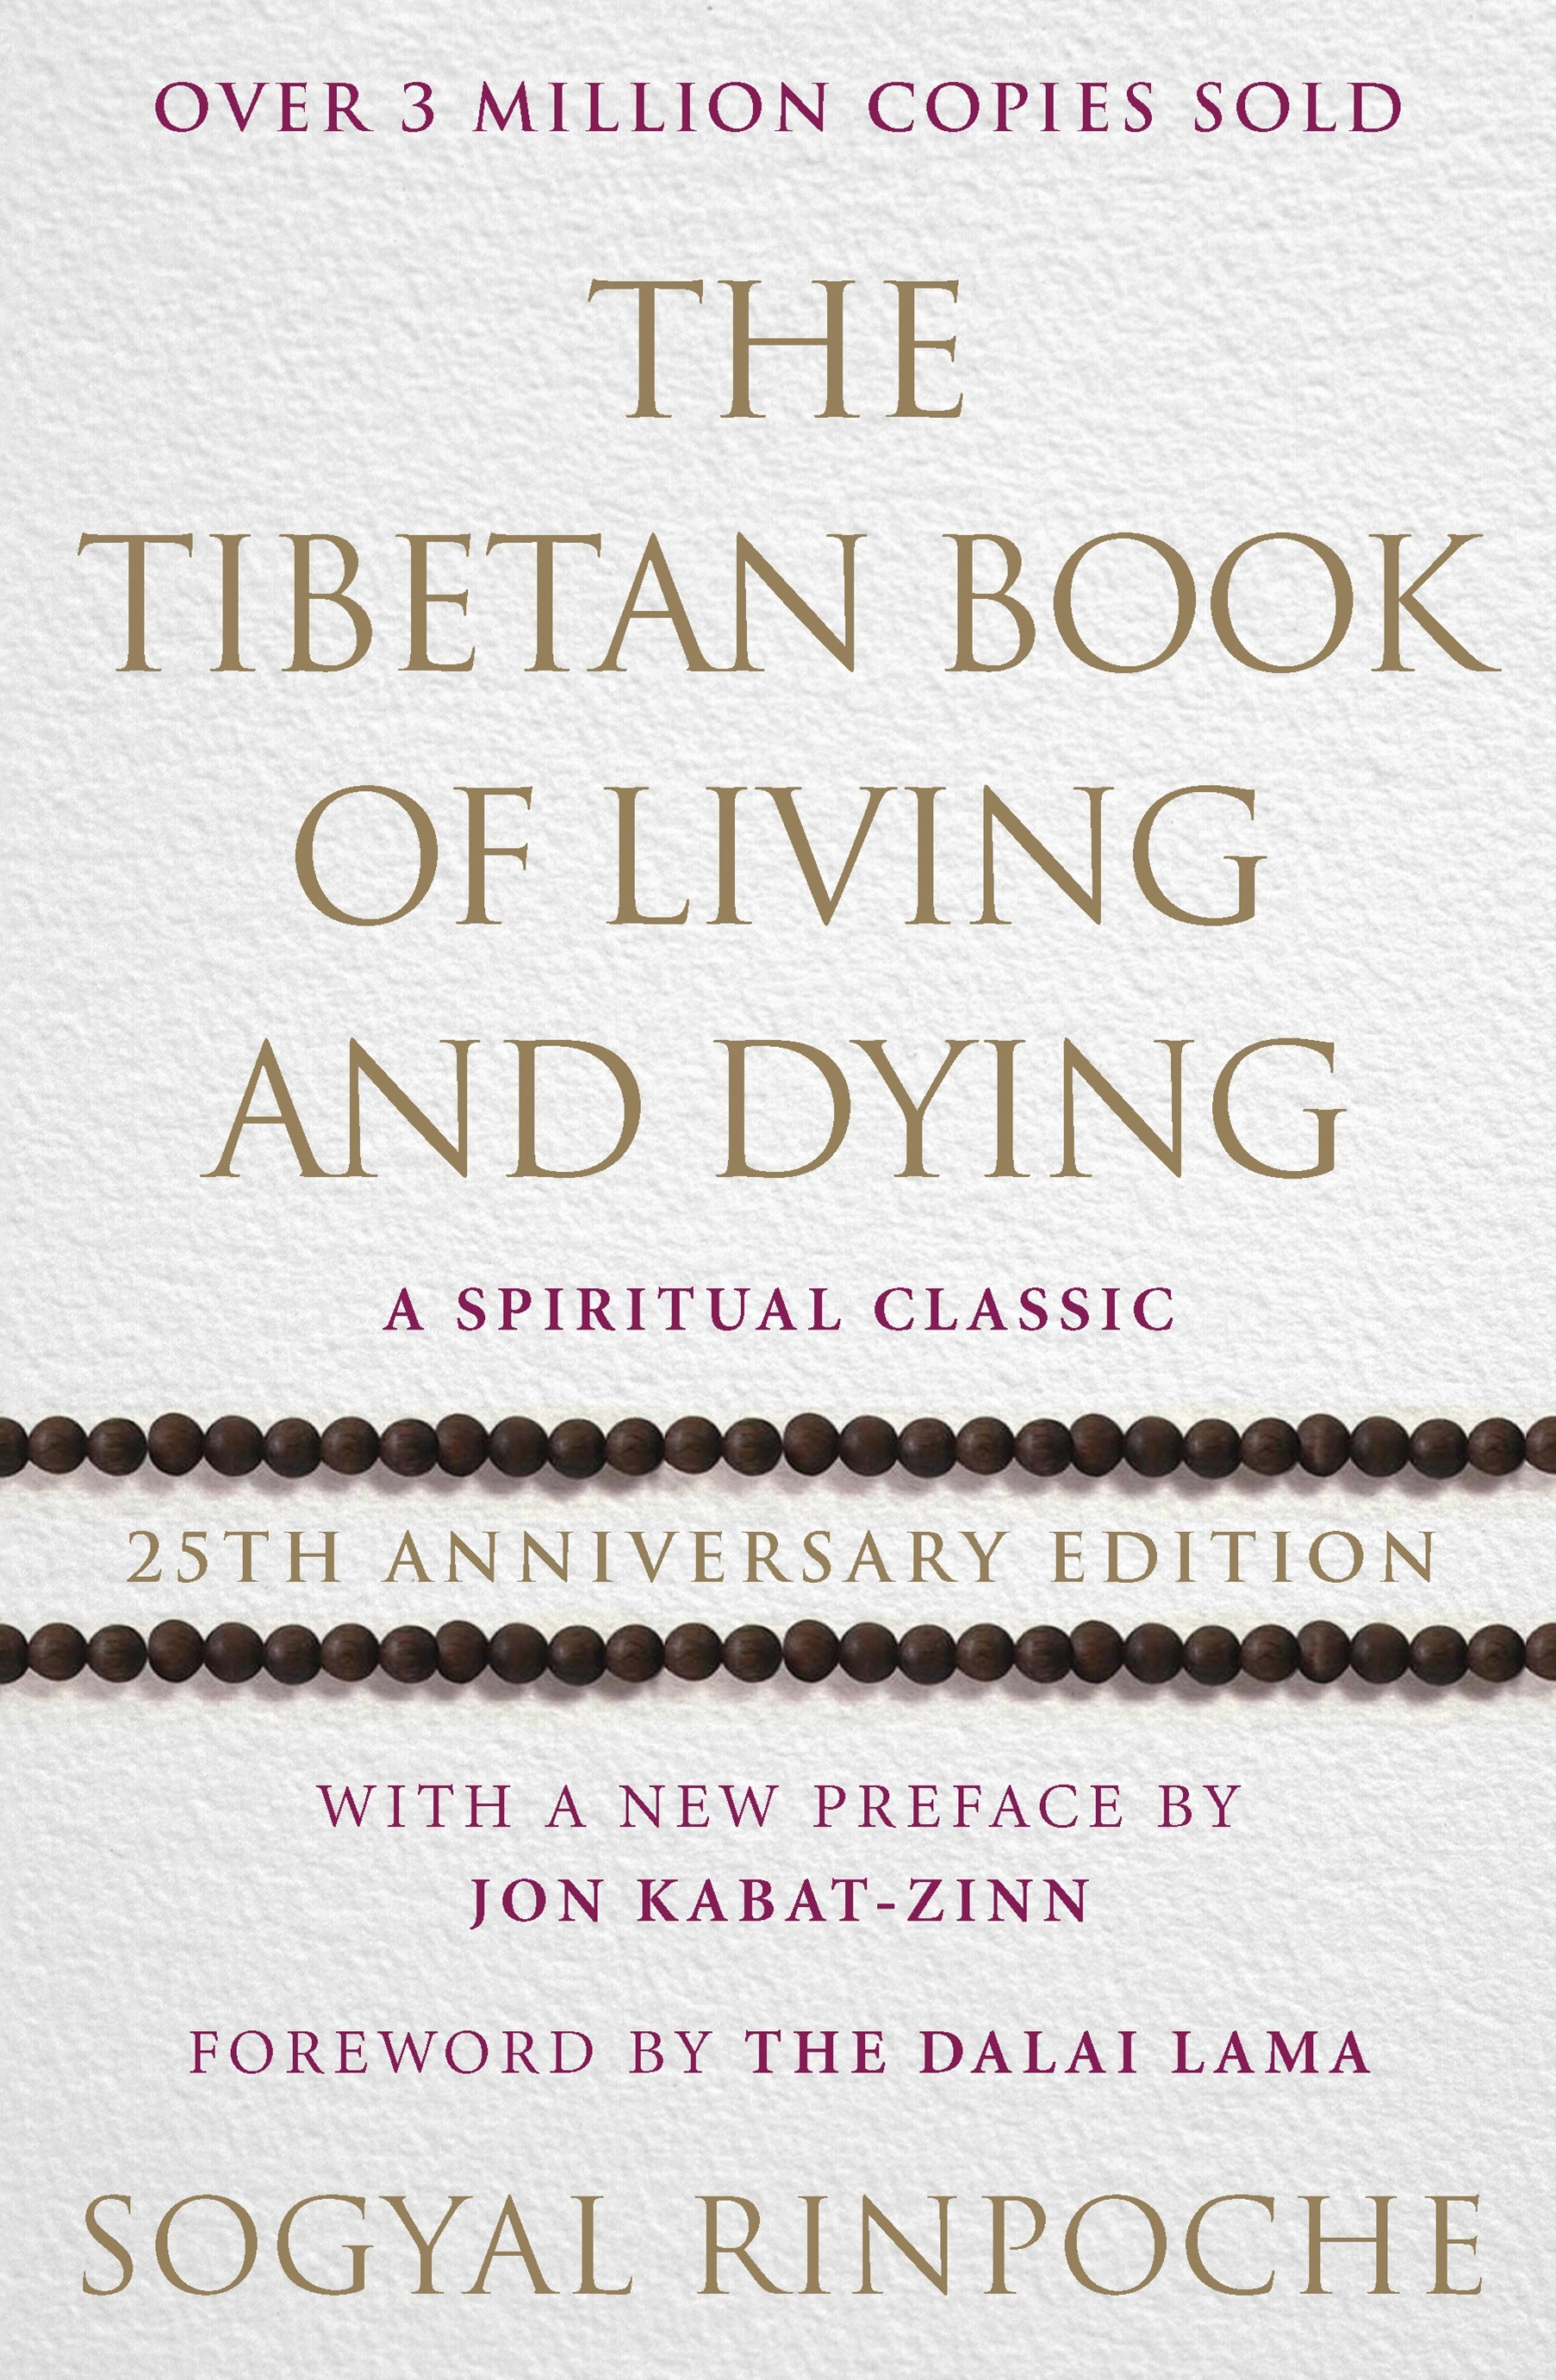 The Tibetan Book Of Living And Dying: A Spiritual Classic from One of the Foremost Interpreters of